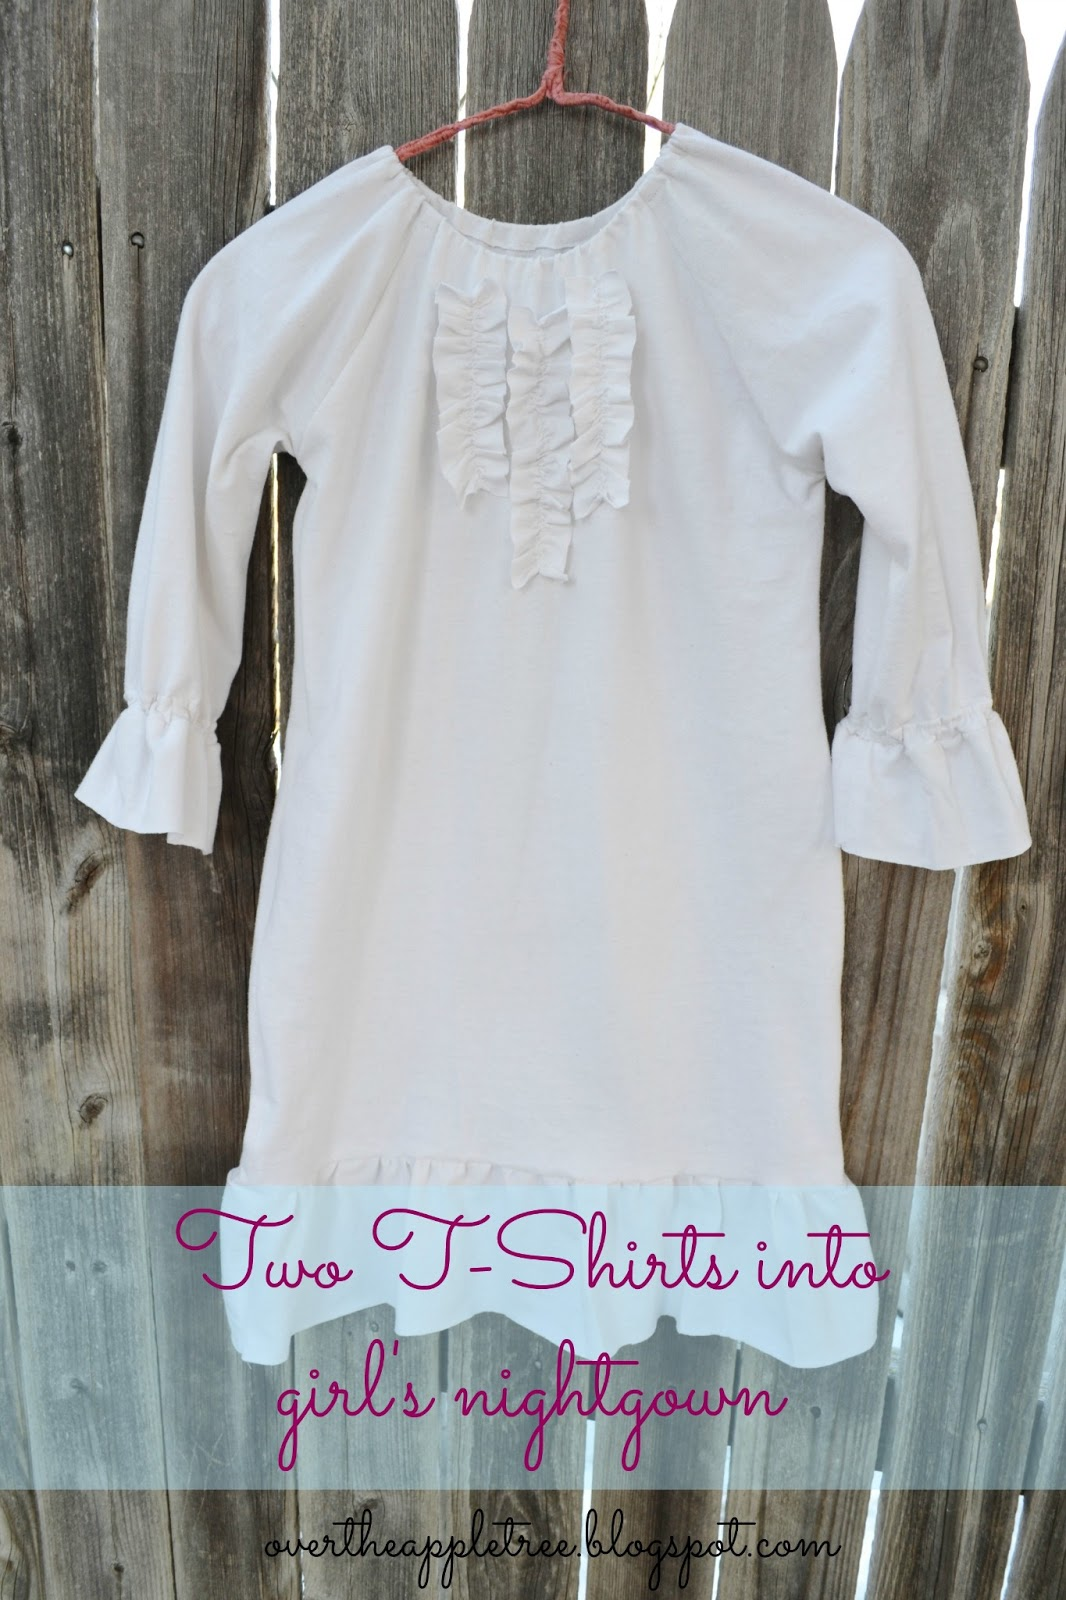 over the apple tree girl 39 s nightgown made from men 39 s t shirts. Black Bedroom Furniture Sets. Home Design Ideas